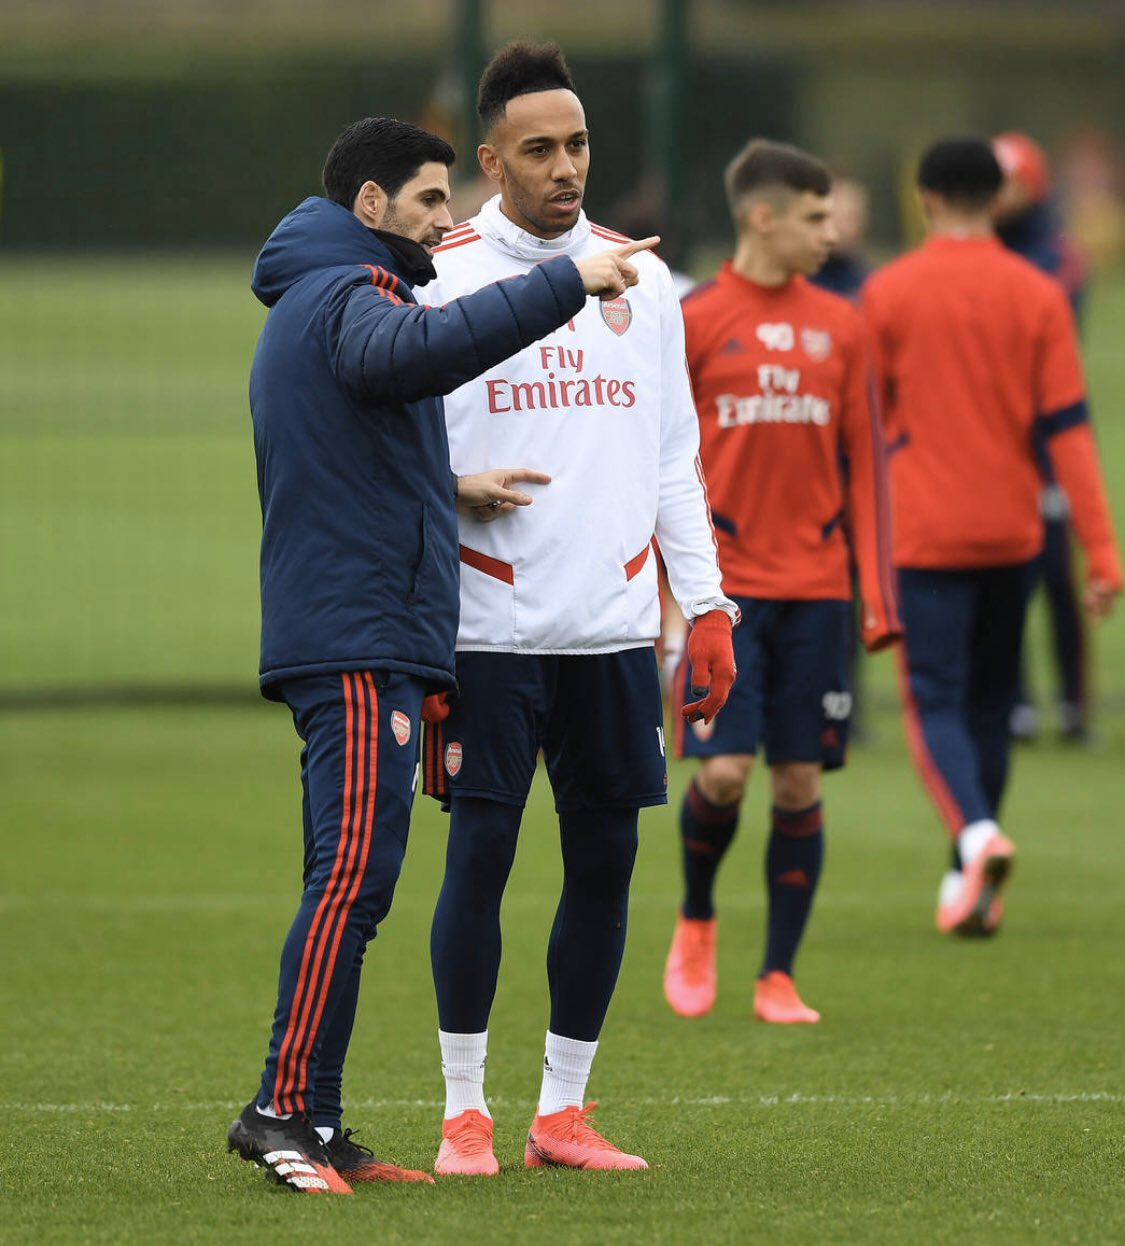 Mikel Arteta and Pierre-Emerick Aubameyang speak in the foreground, with Catalin Cirjan behind them. Triallist Tyger Smalls walks away in the background (Photo via Tyger Smalls on Twitter)